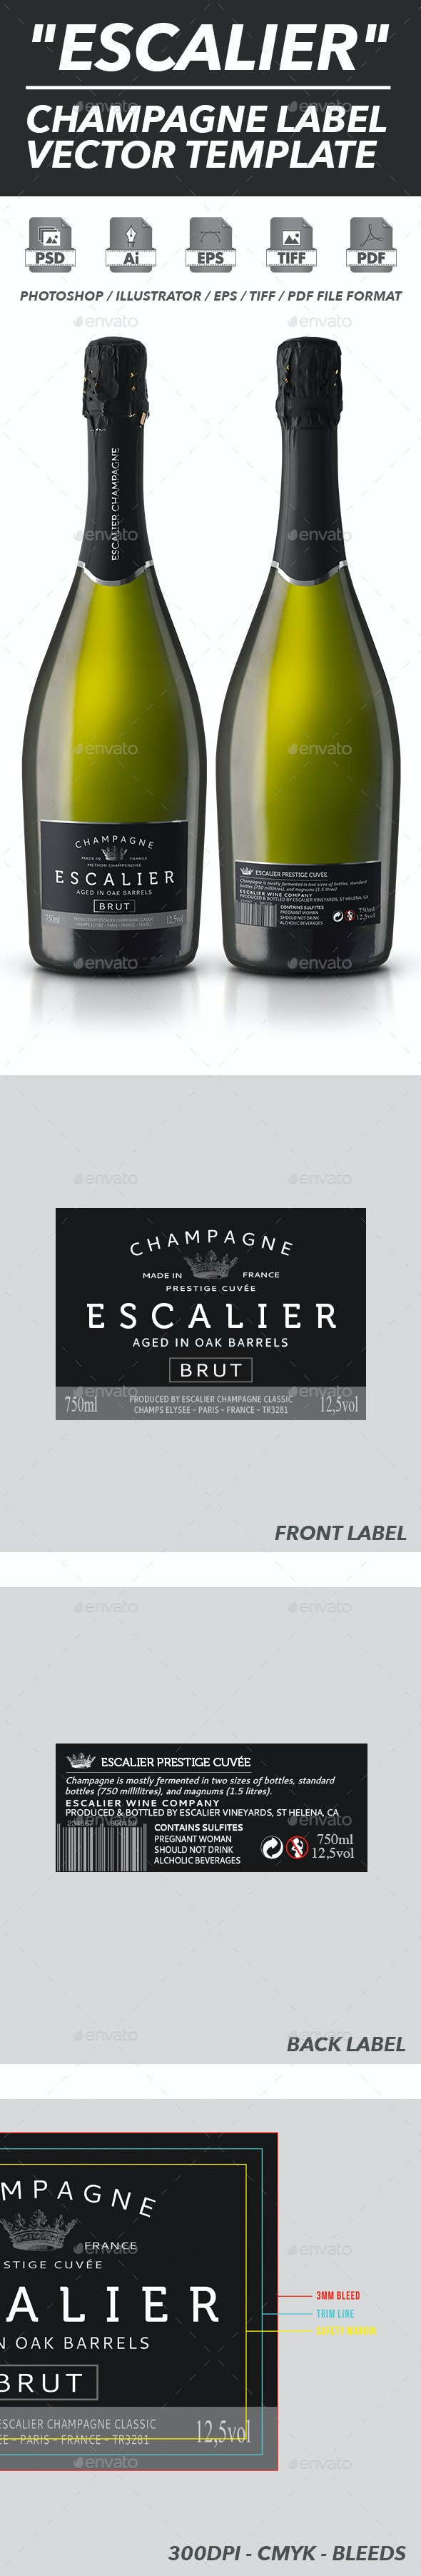 Champagne Label Vector Template - Packaging Print Templates